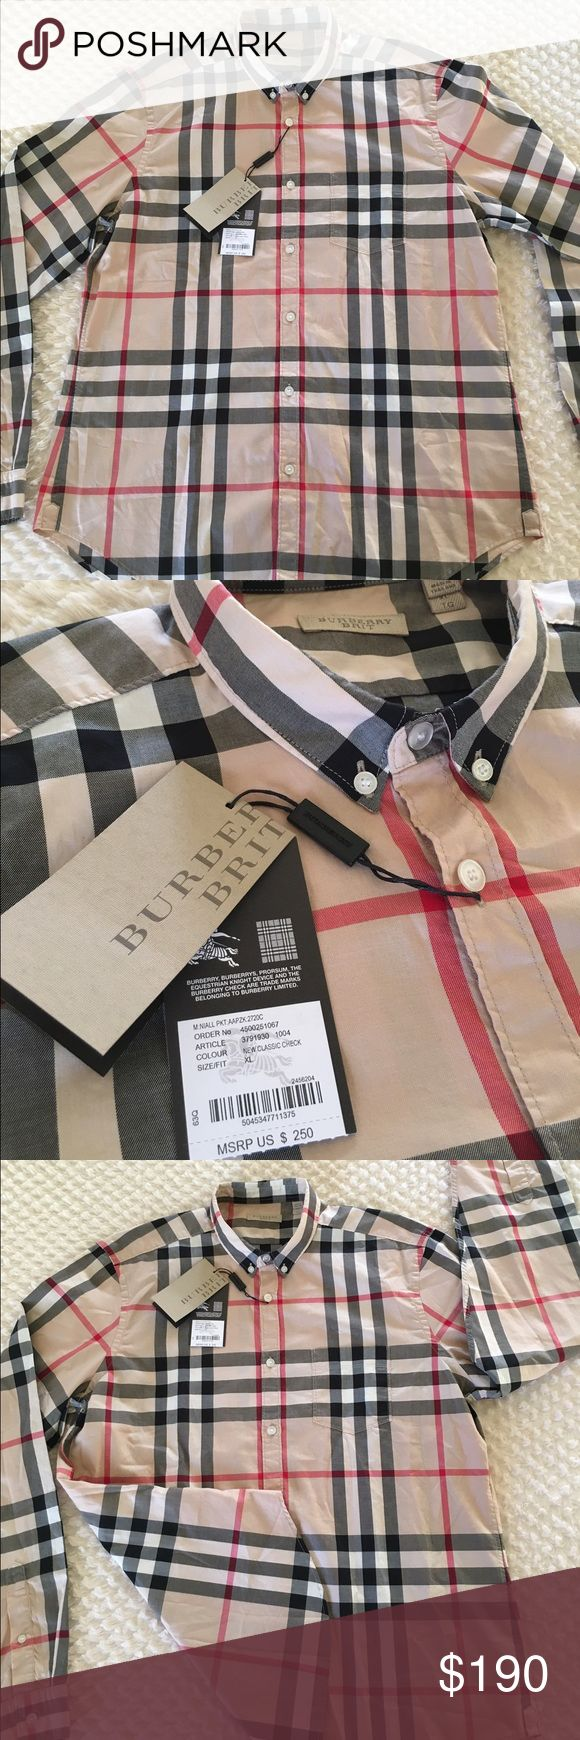 New authentic burberry shirt for men xl New with tags authentic burberry shirt for men size xl 100% cotton long sleeves beige color original price is 250$ Burberry Shirts Casual Button Down Shirts